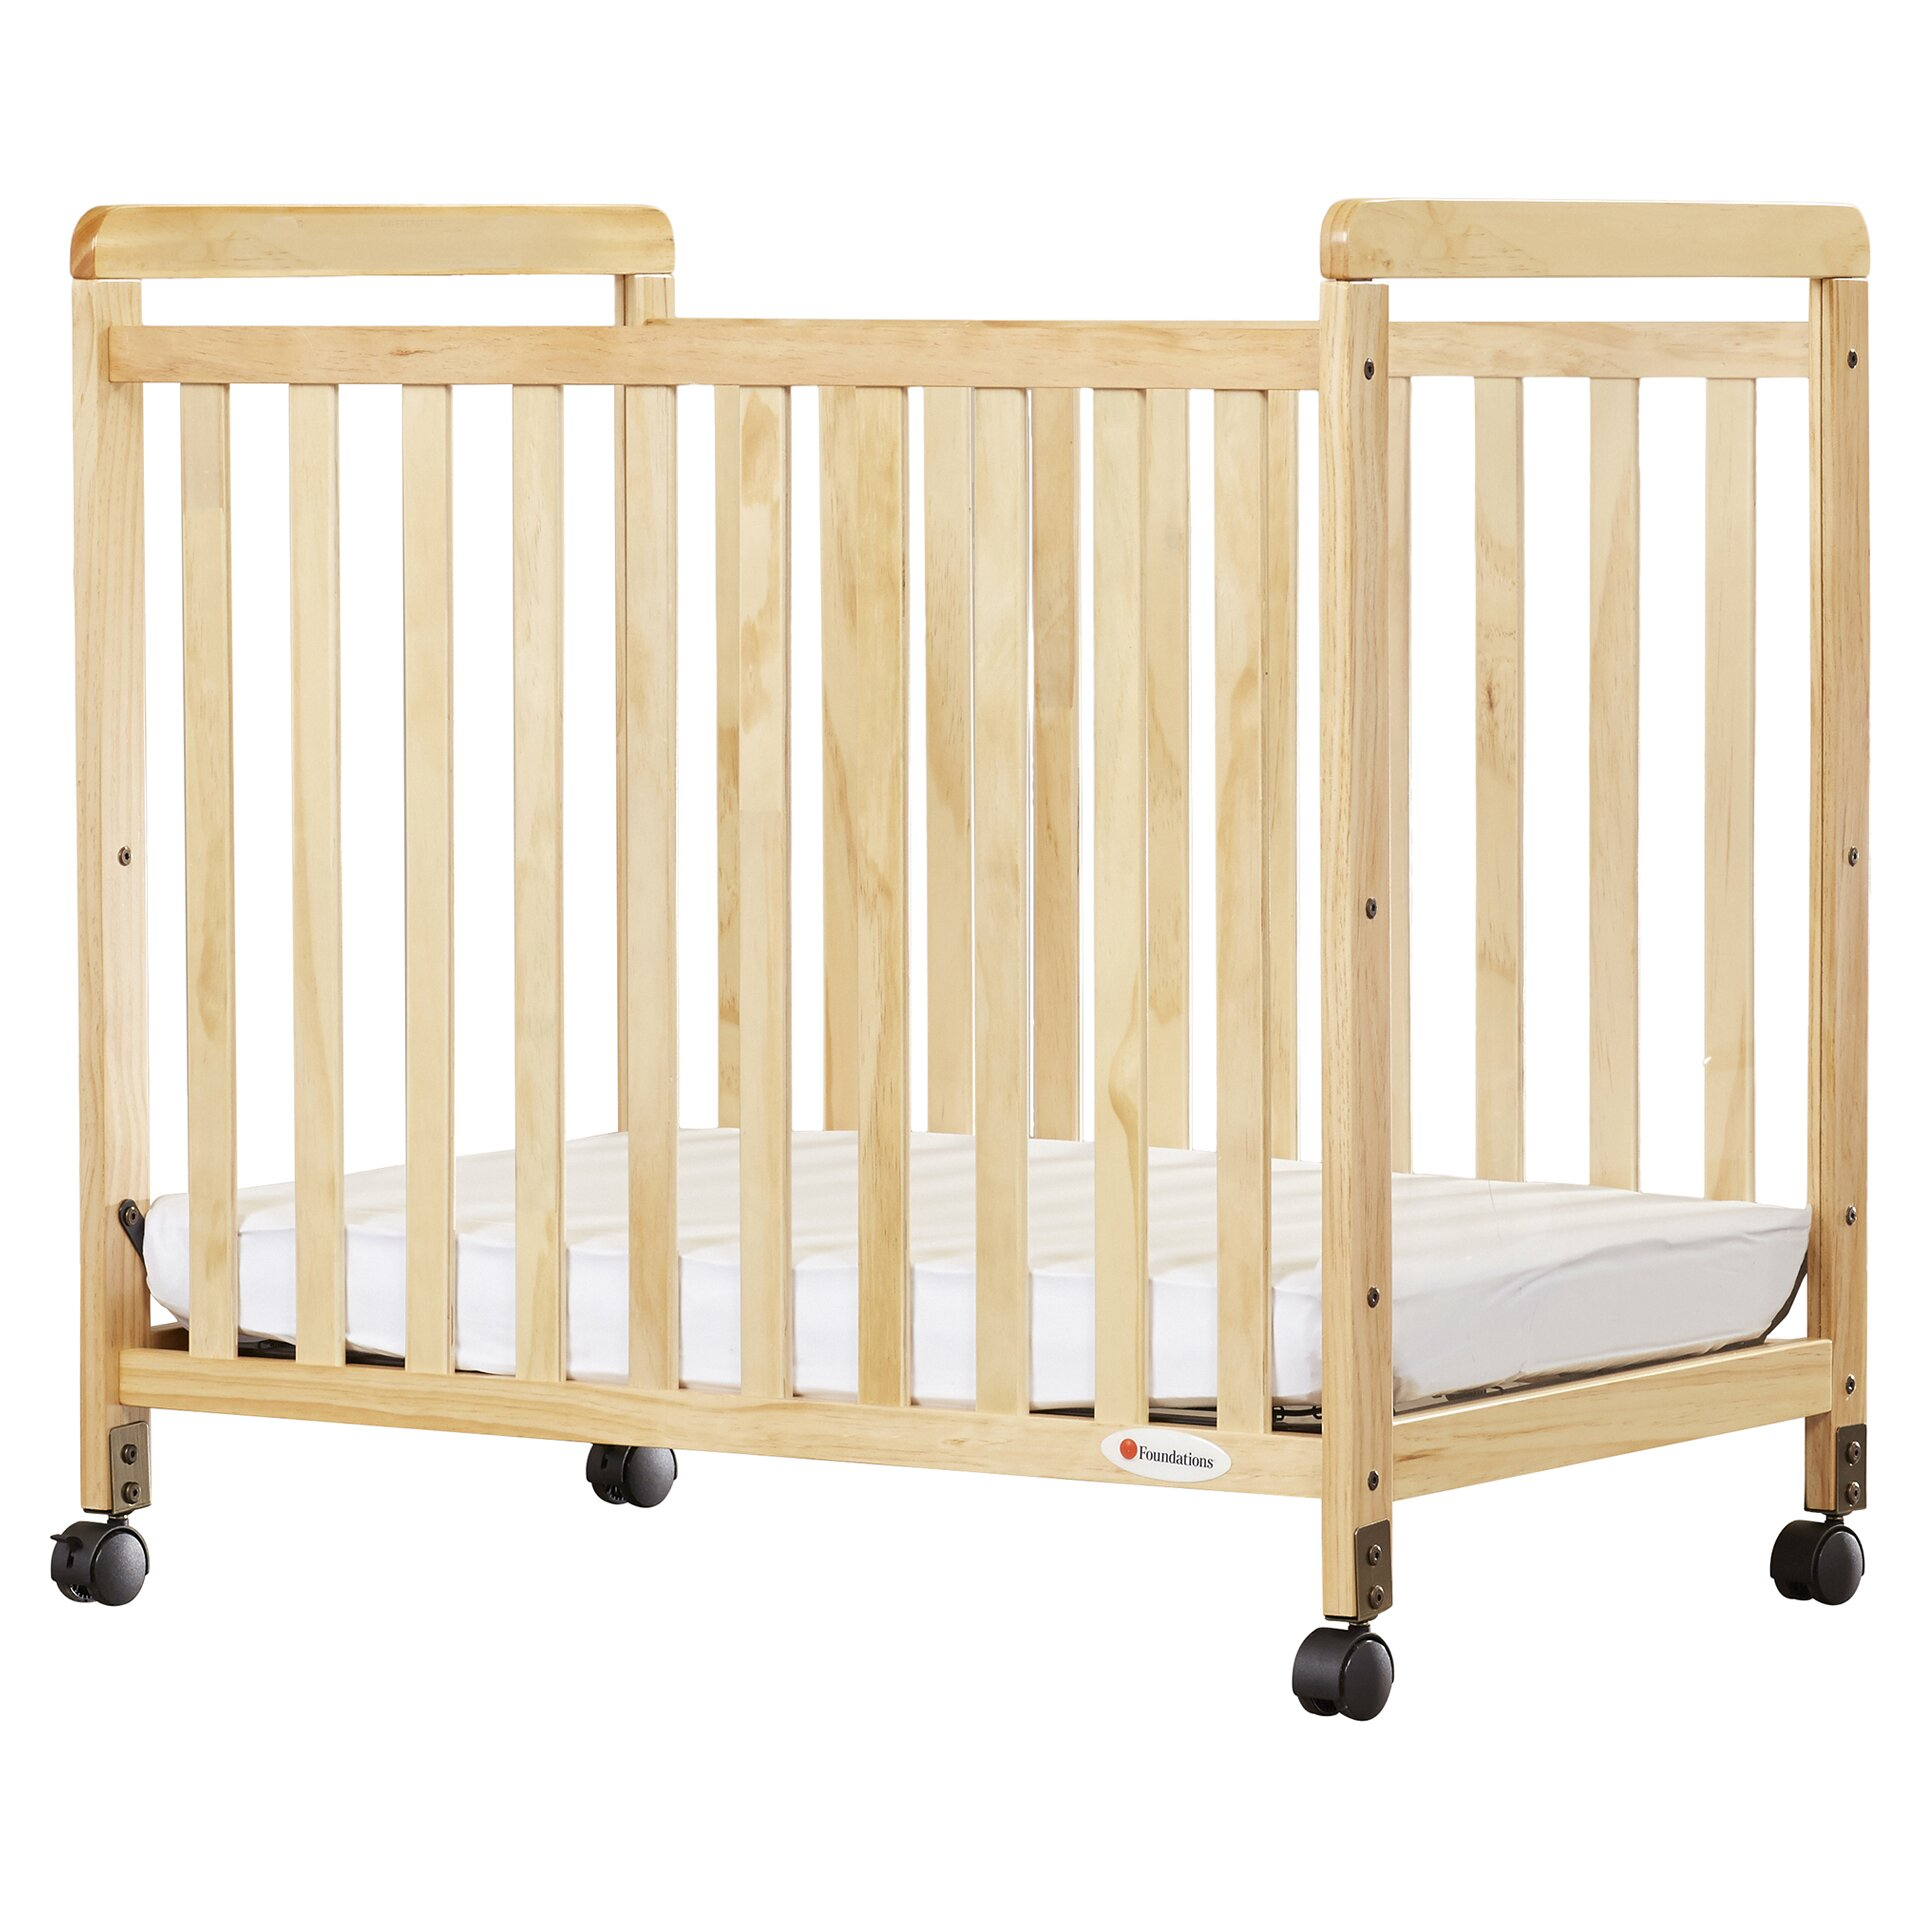 Sawyer pact Size Clearview Convertible Crib with